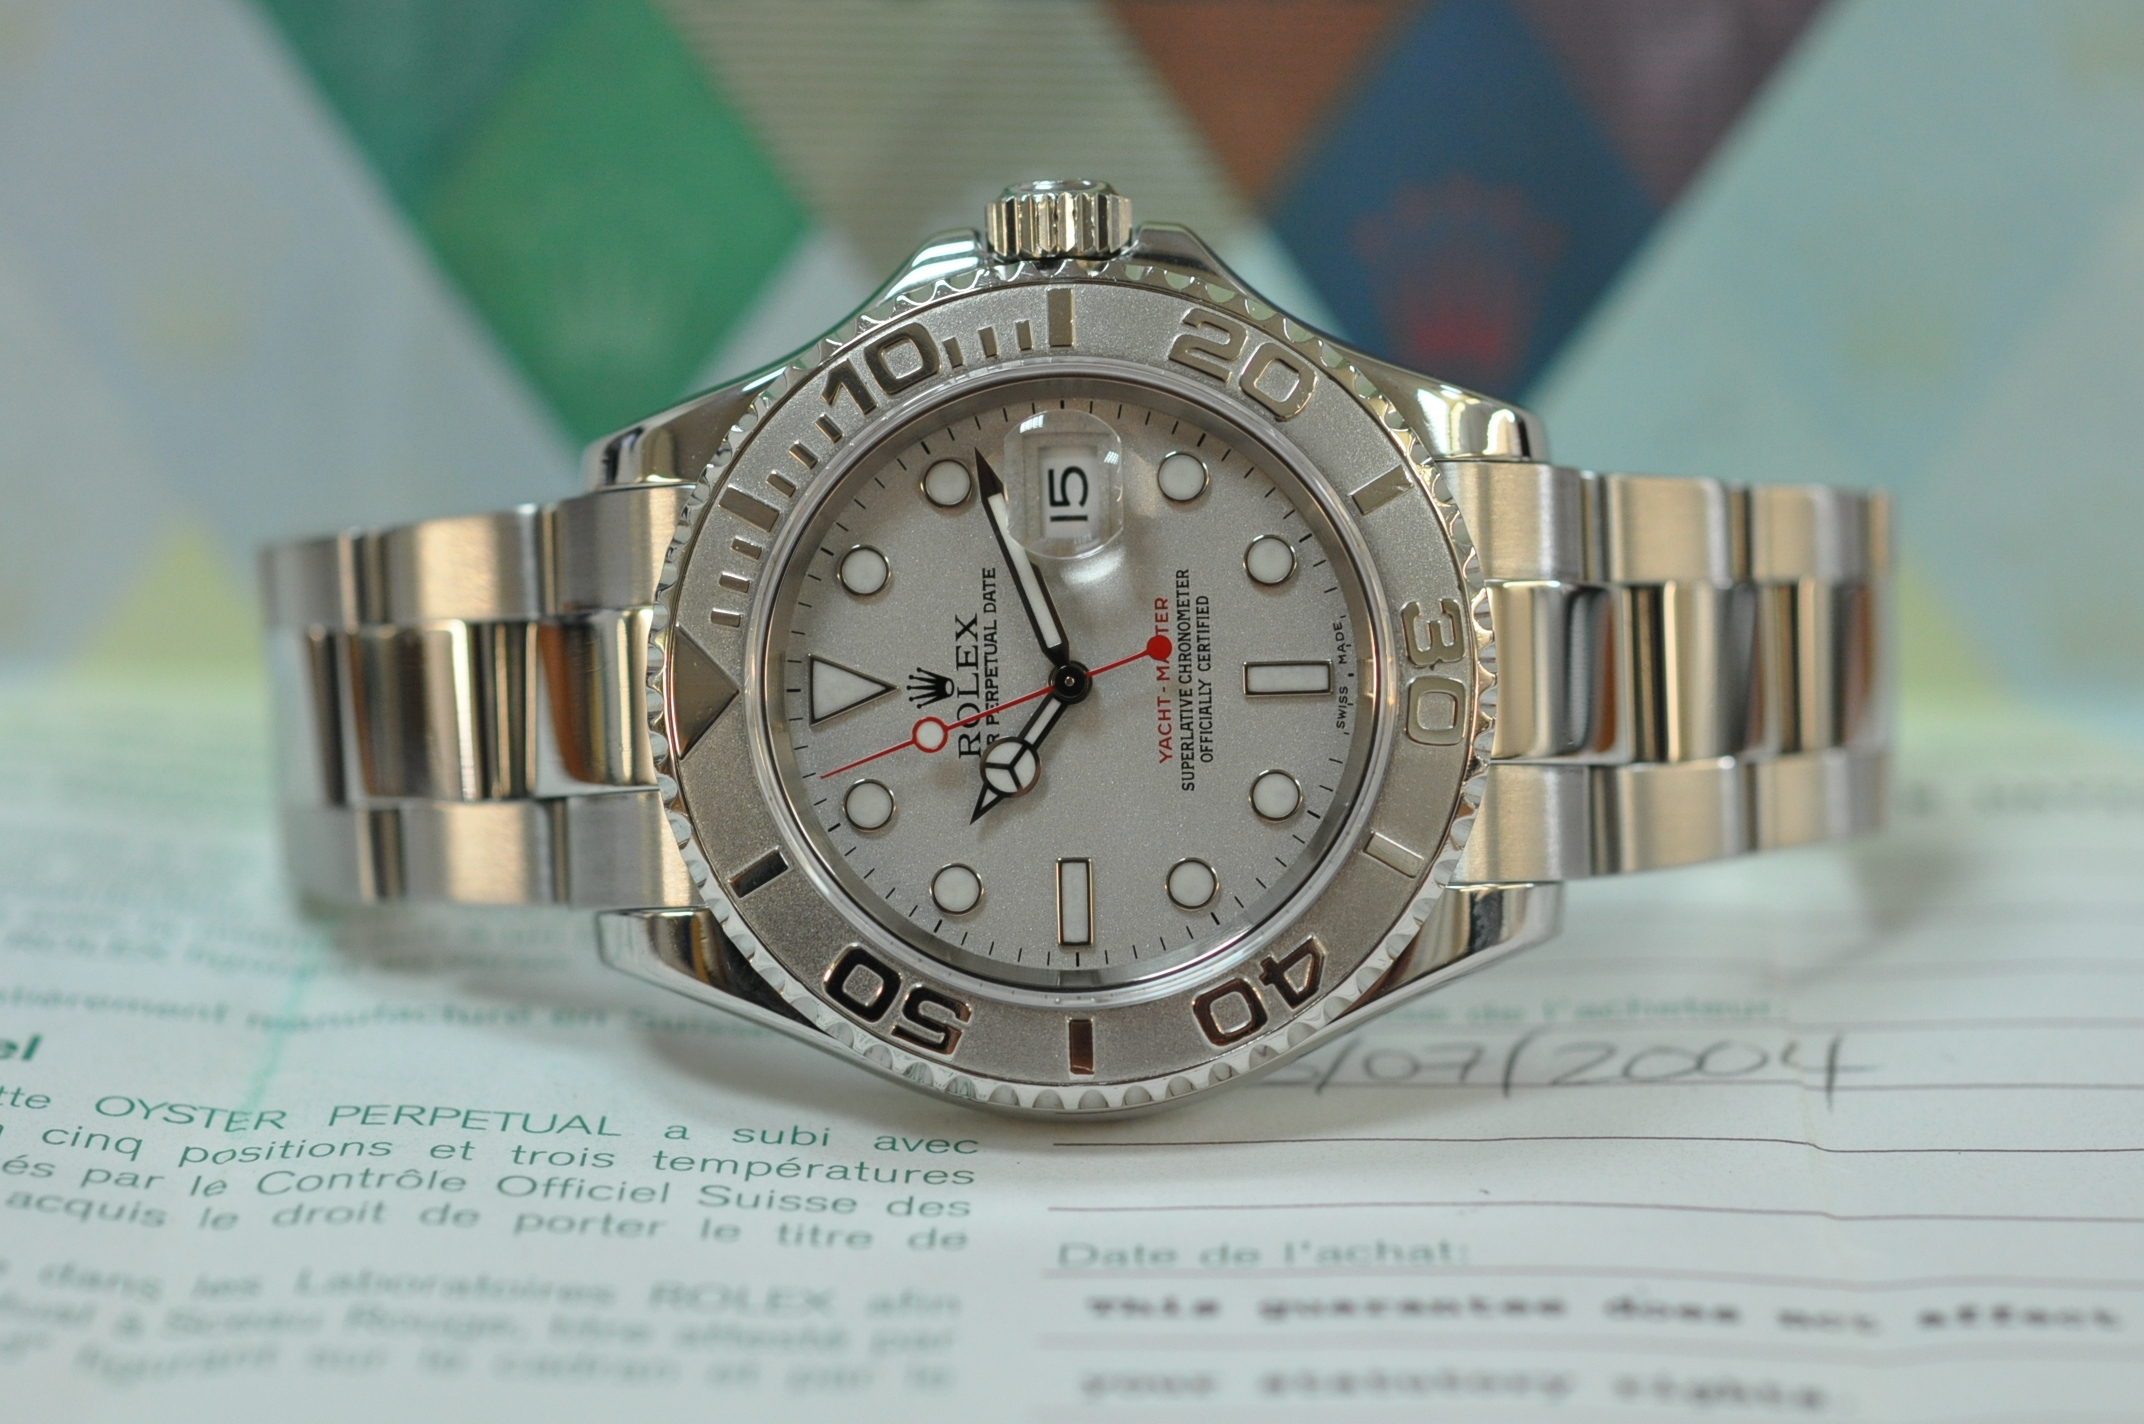 2004 Yachtmaster Rolesium 16622